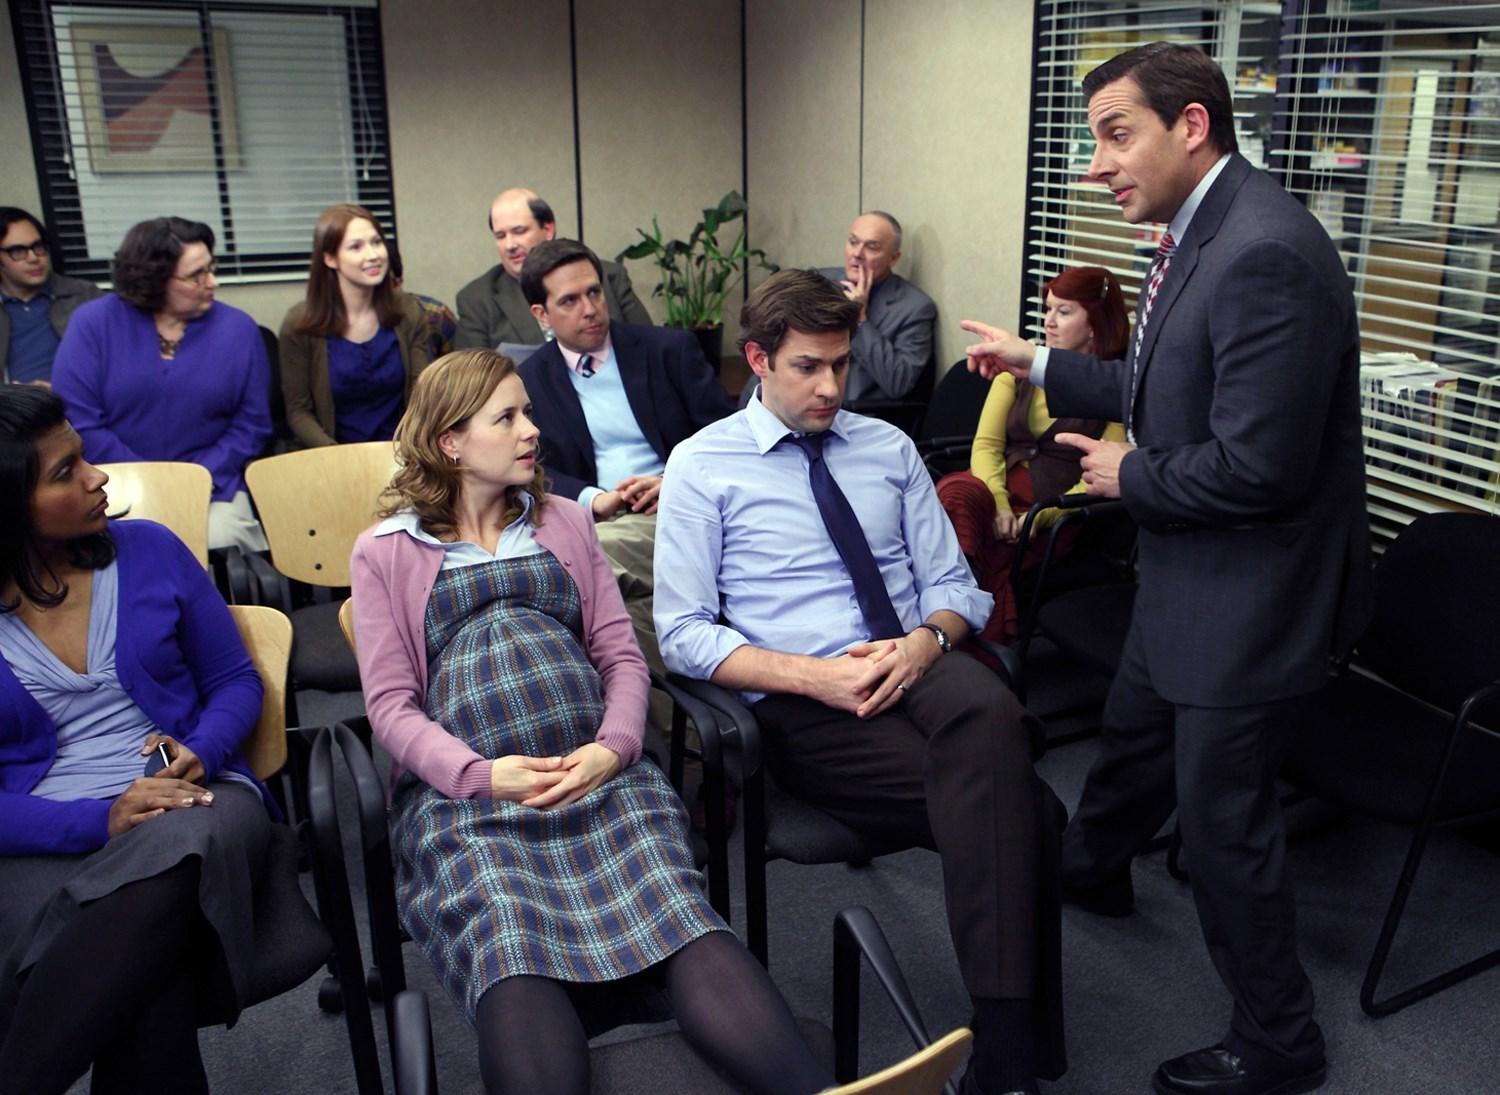 Get paid $1,000 to binge-watch 'The Office'